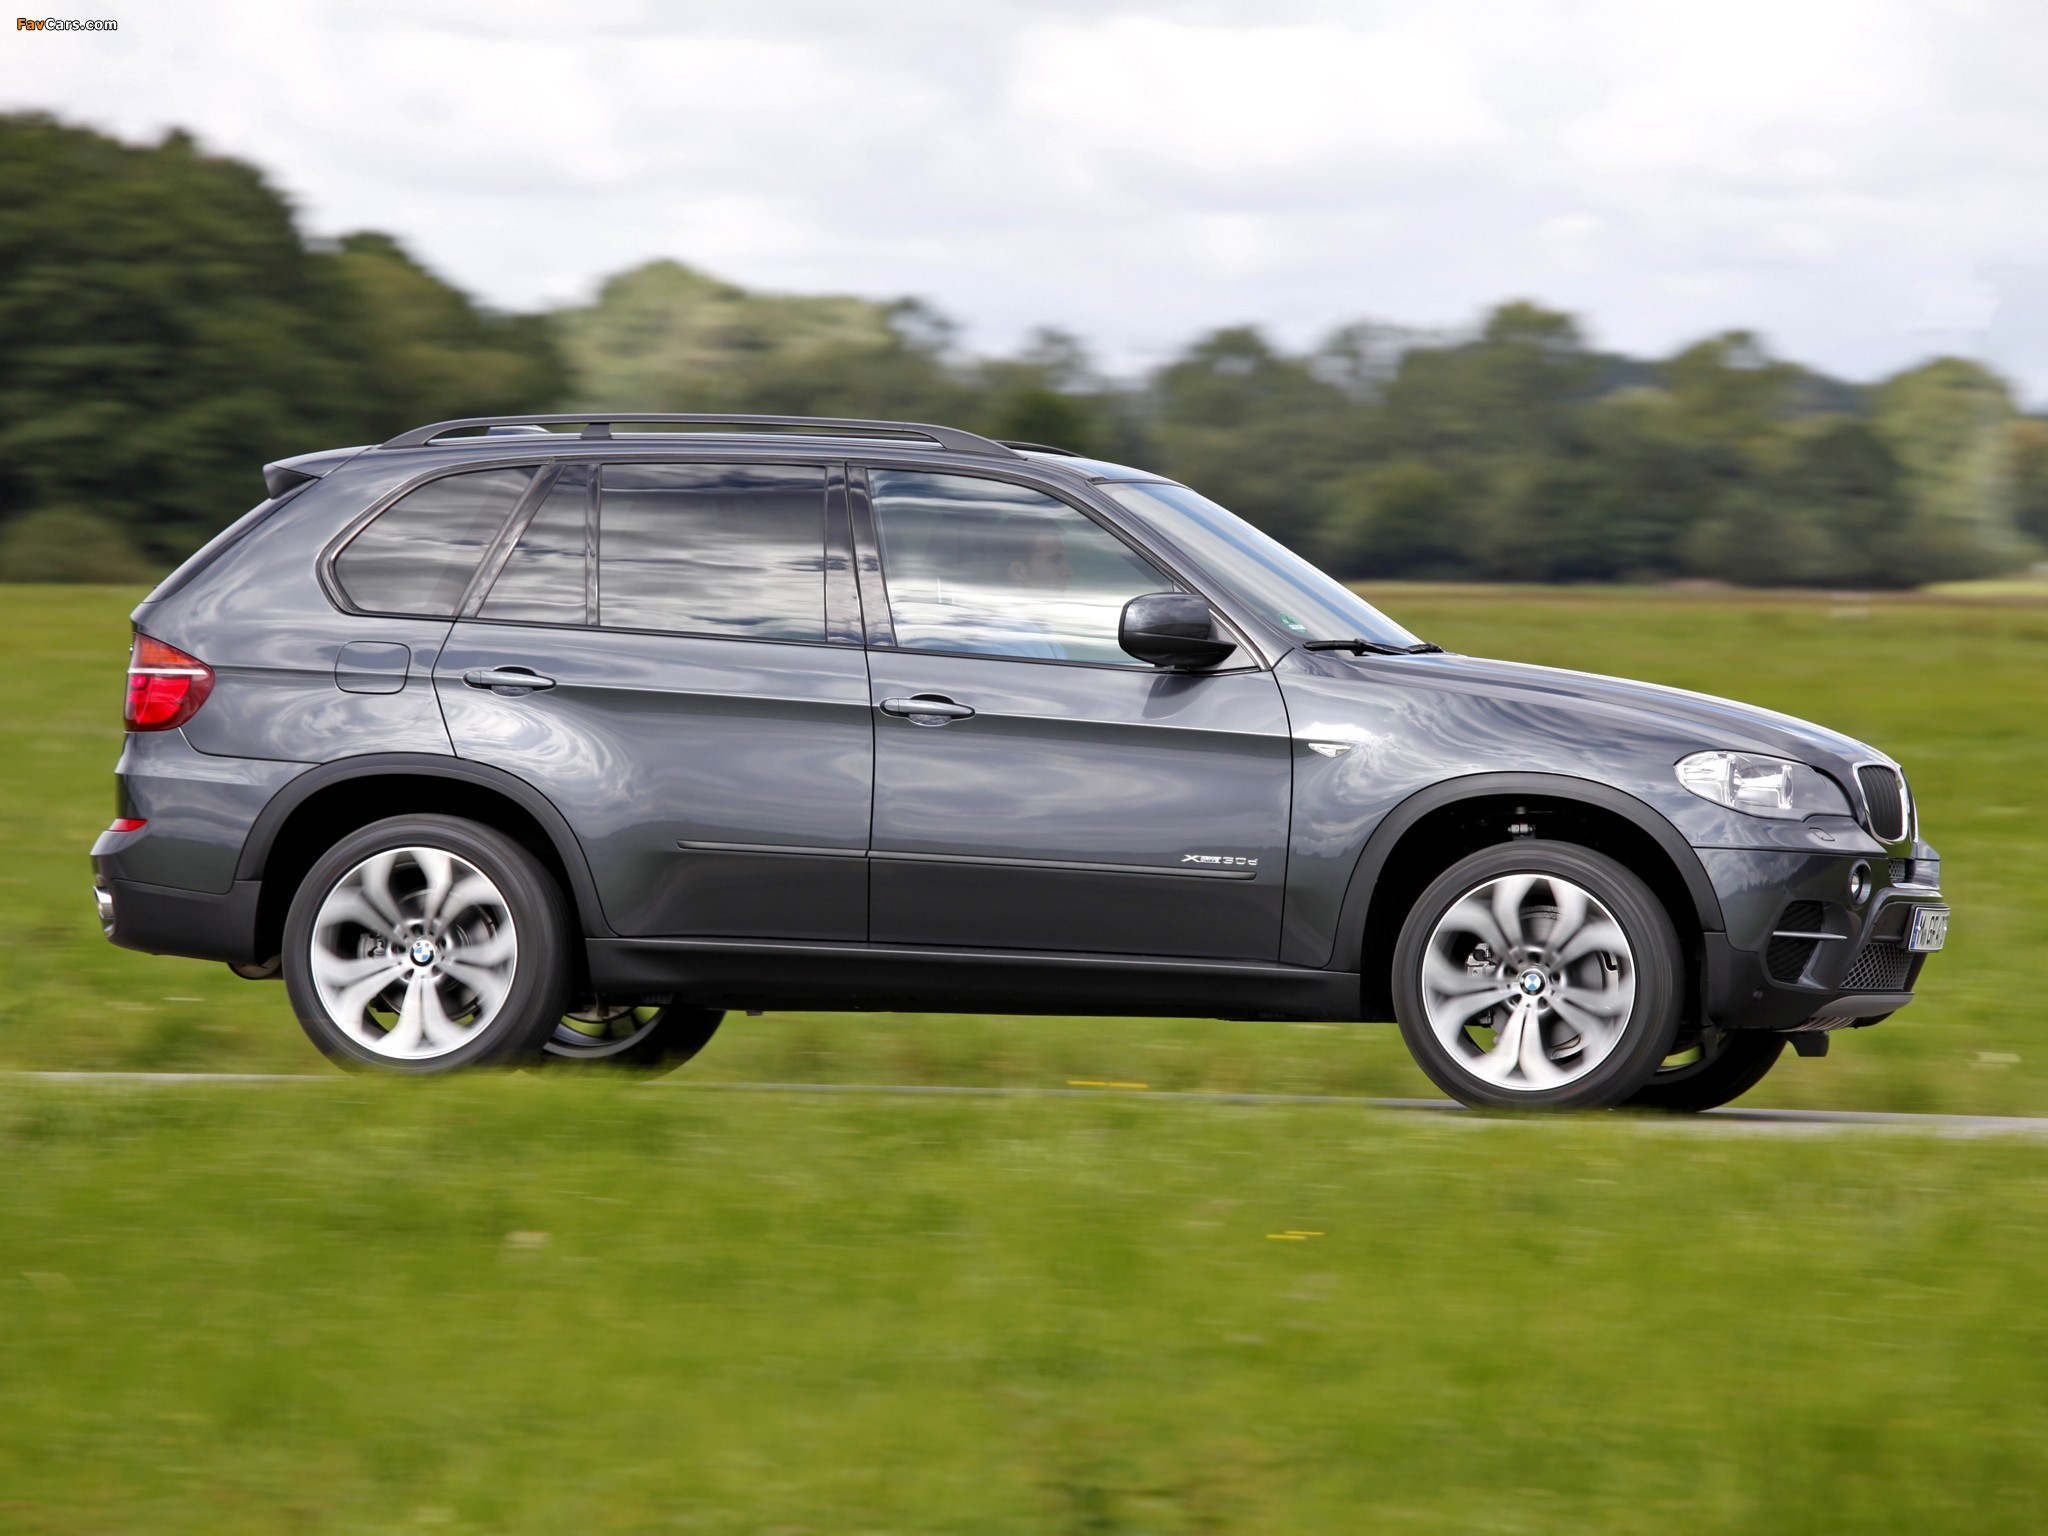 Wallpapers Of Bmw X5 Xdrive30d E70 2011 2048x1536